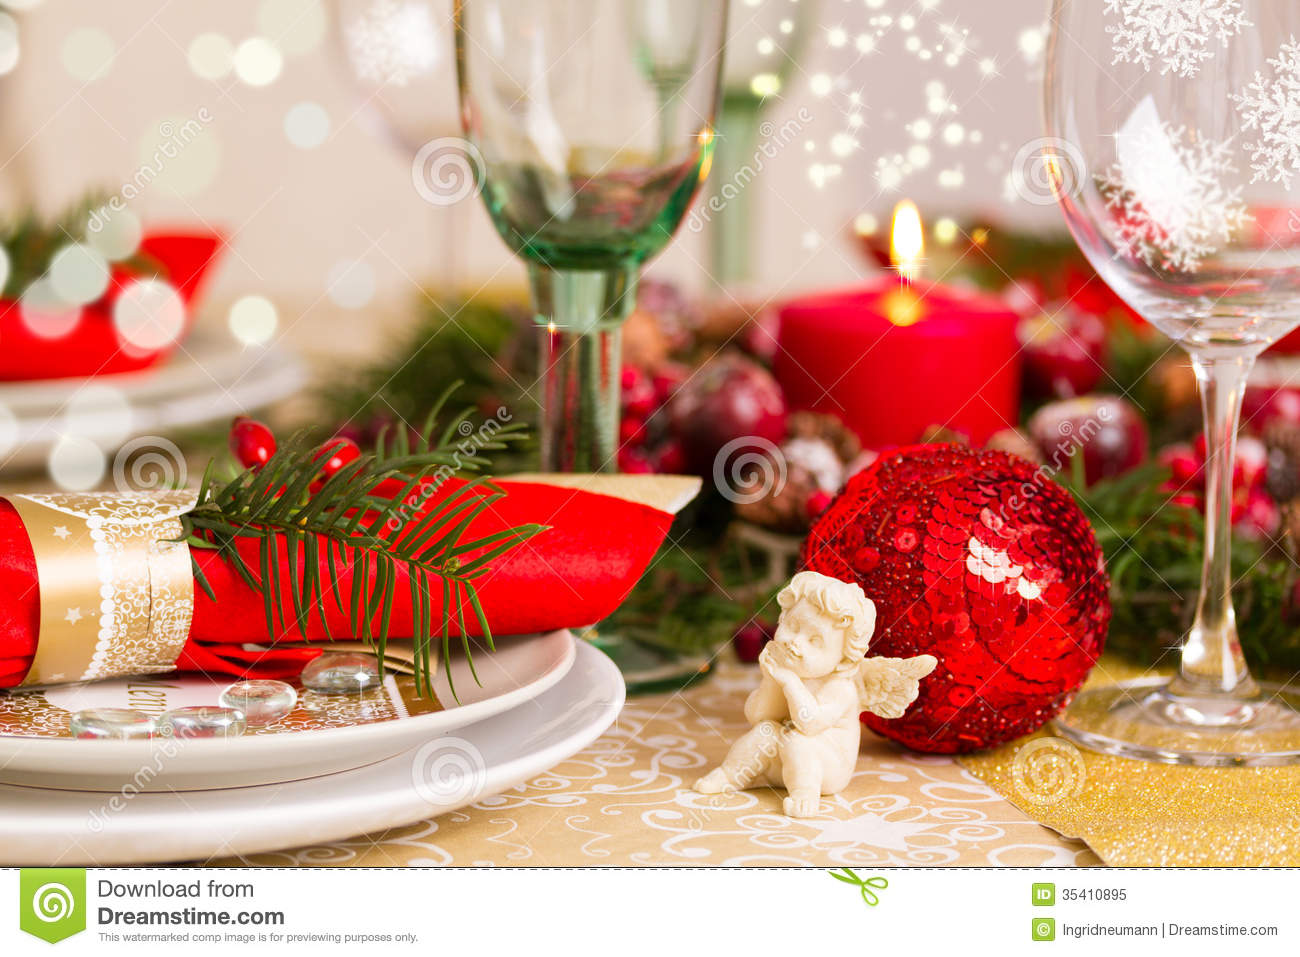 Christmas Table Settings red white gold table setting stock photos, images, & pictures